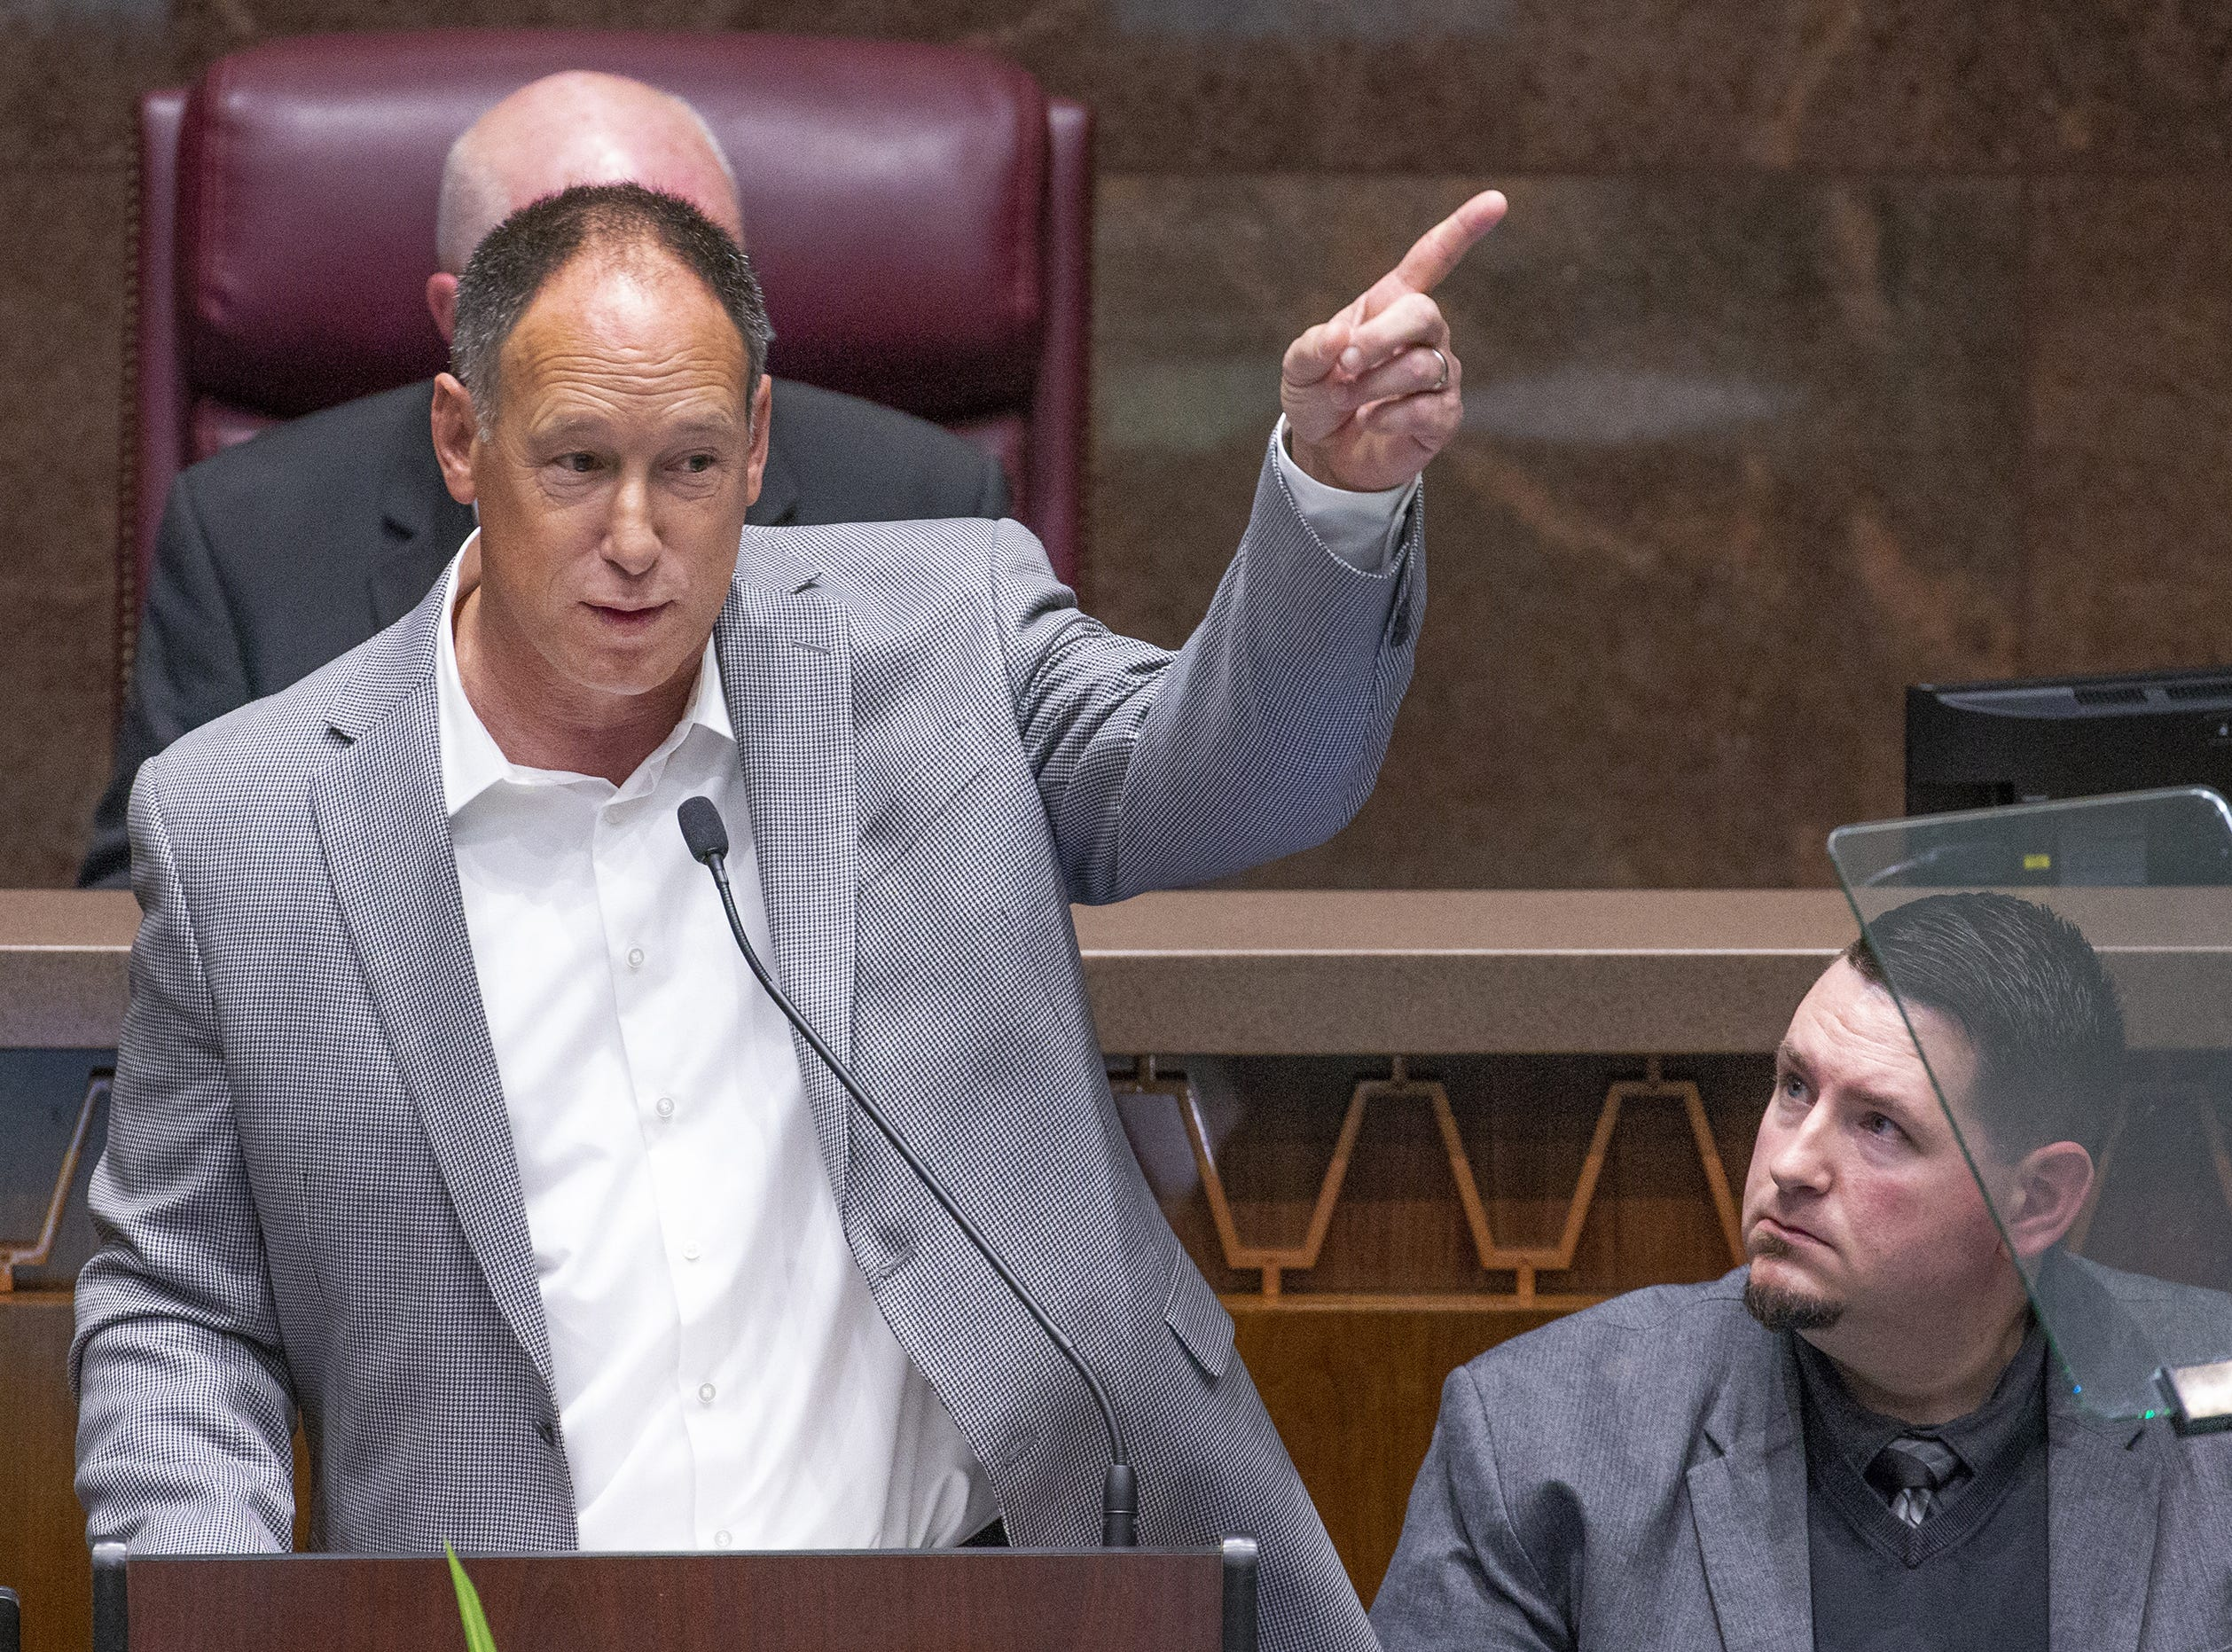 Former Arizona Diamondbacks player Luis Gonzalez speaks to the Legislature and guests in the House of Representatives before Gov. Doug Ducey's State of the State address at the State Capitol, Jan. 14, 2019.